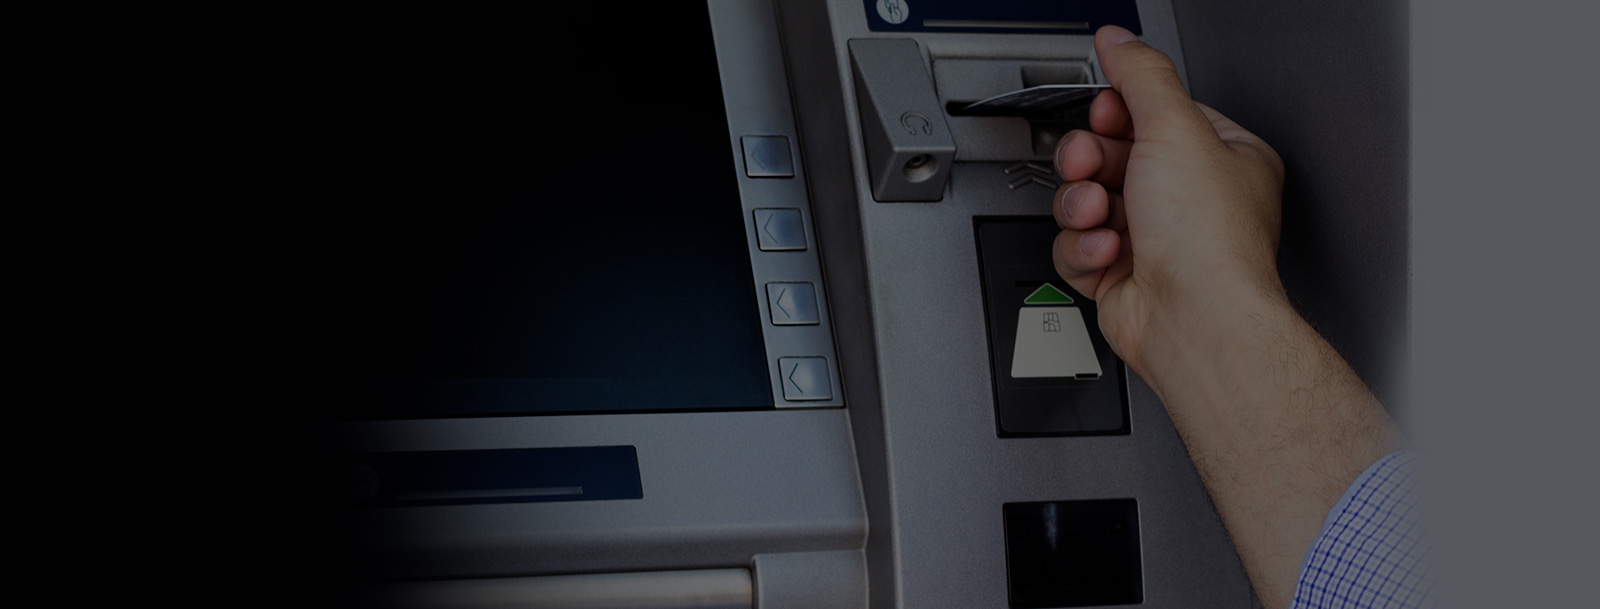 Credit Card Cash Withdrawal Steps & Charges - SBI Card ATM